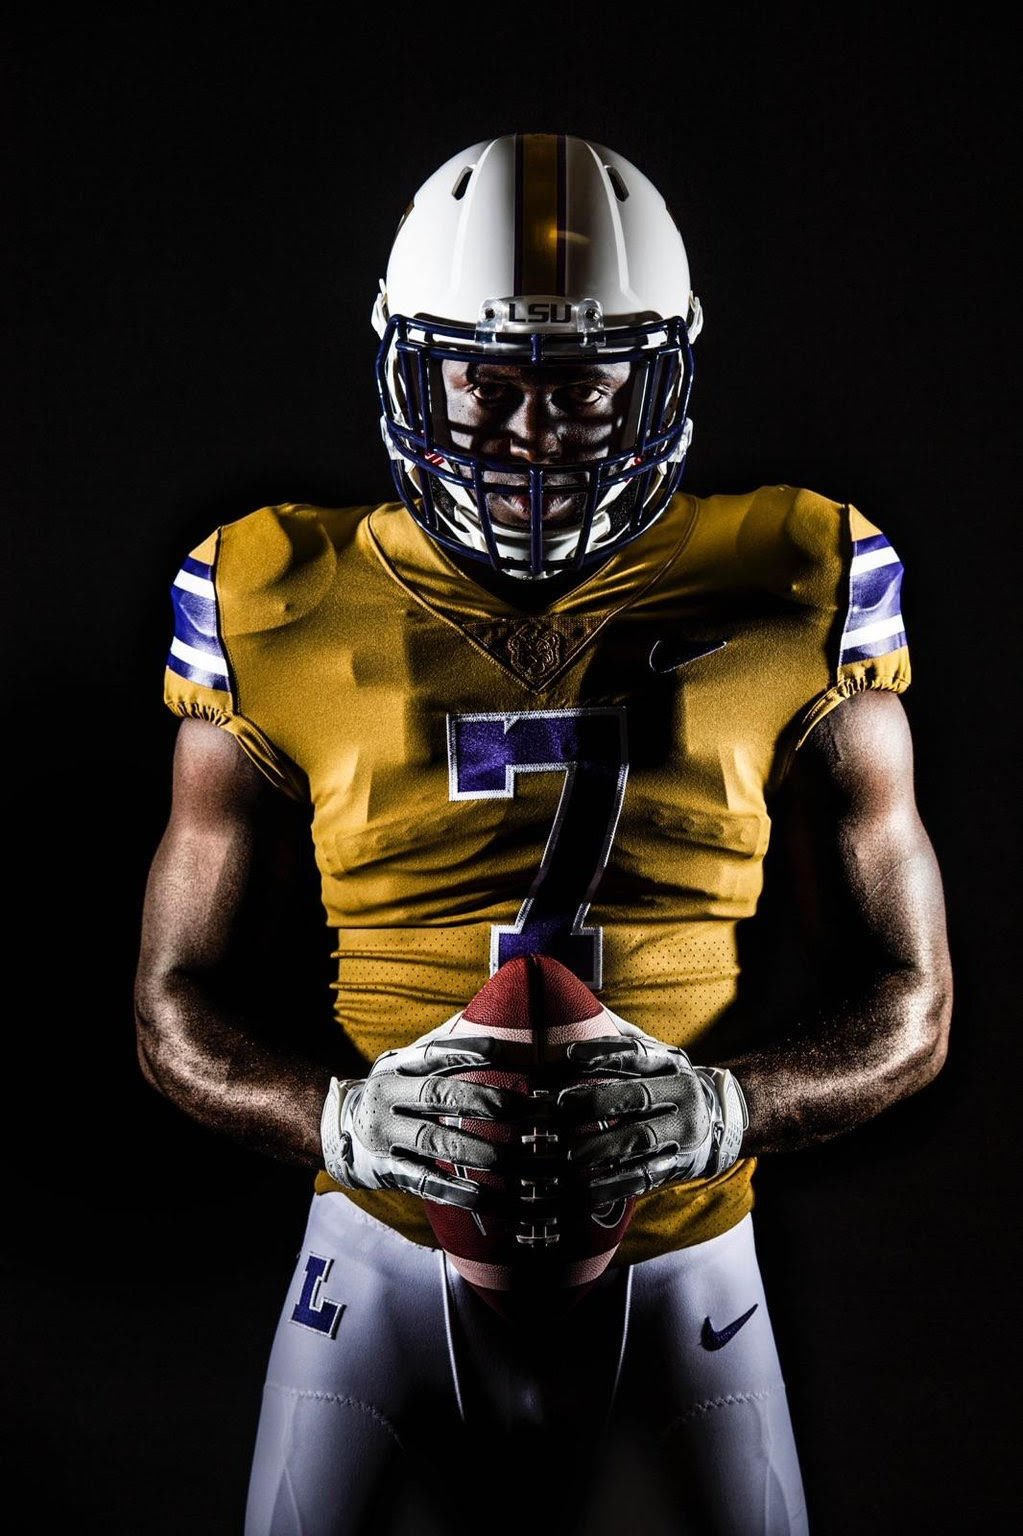 LSU wearing gold jerseys, white helmets with numerals for ...